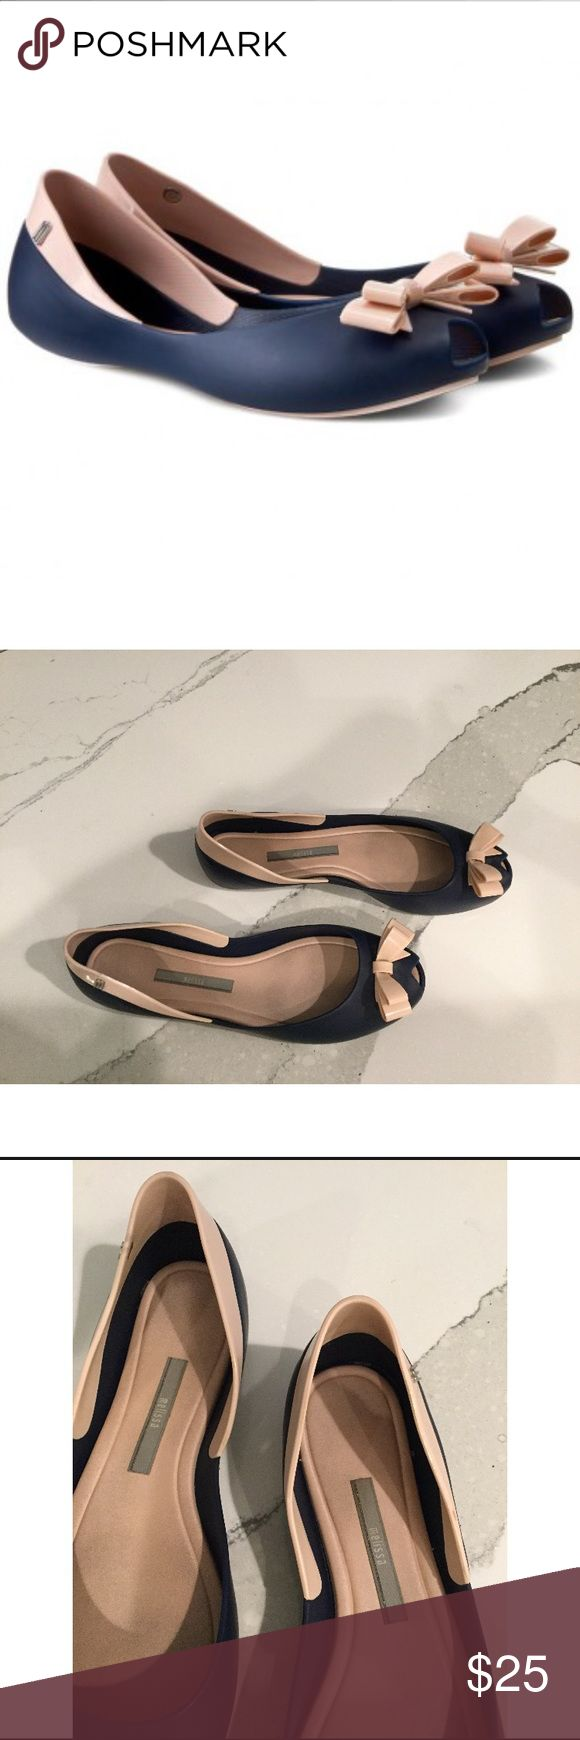 Blue and pink Melissa flats Melissa brand from Brazil. Some moderate wear and pictured. Super comfortable! Melissa Shoes Flats & Loafers